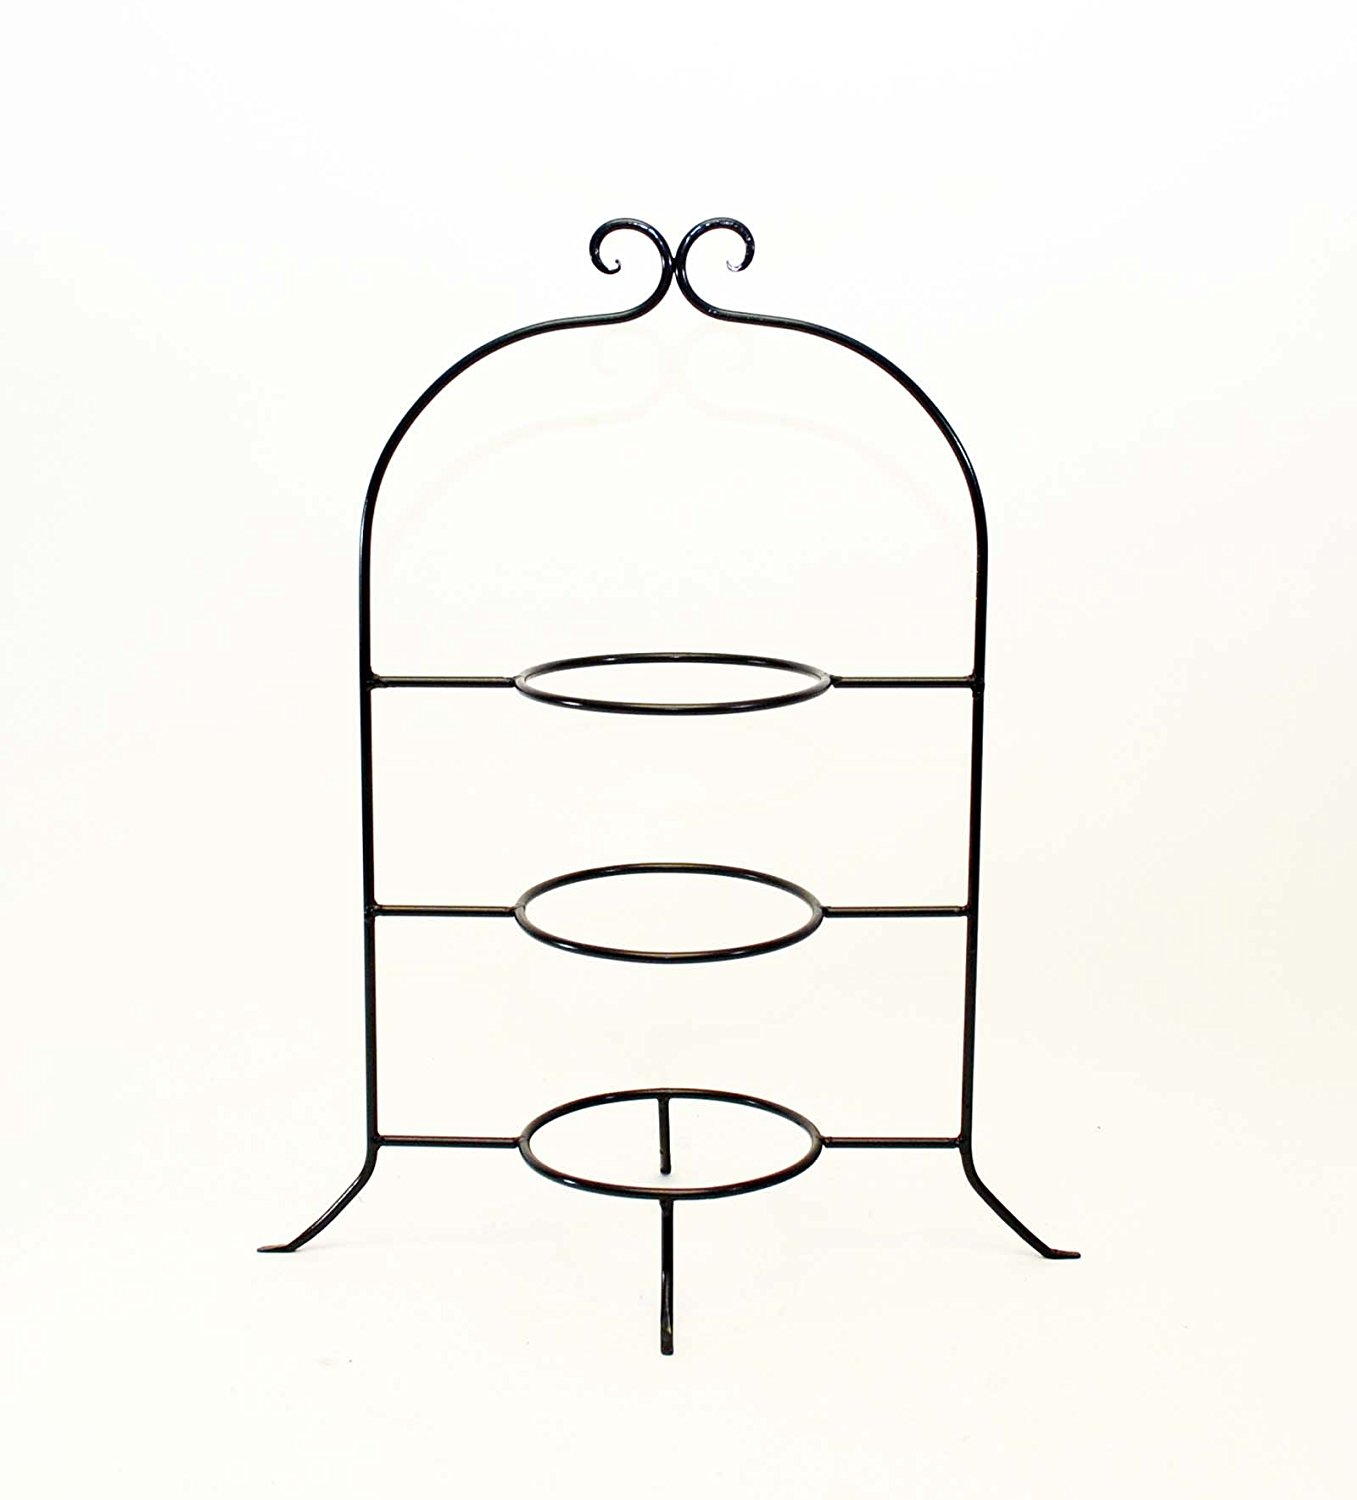 Wrought Iron Three Tier Dessert Plate Rack-22 Inches High x 17 7/8 Inches Total Width. Rings are 6 Inches in Diameter. Iron is 1/4 Inch Thick.